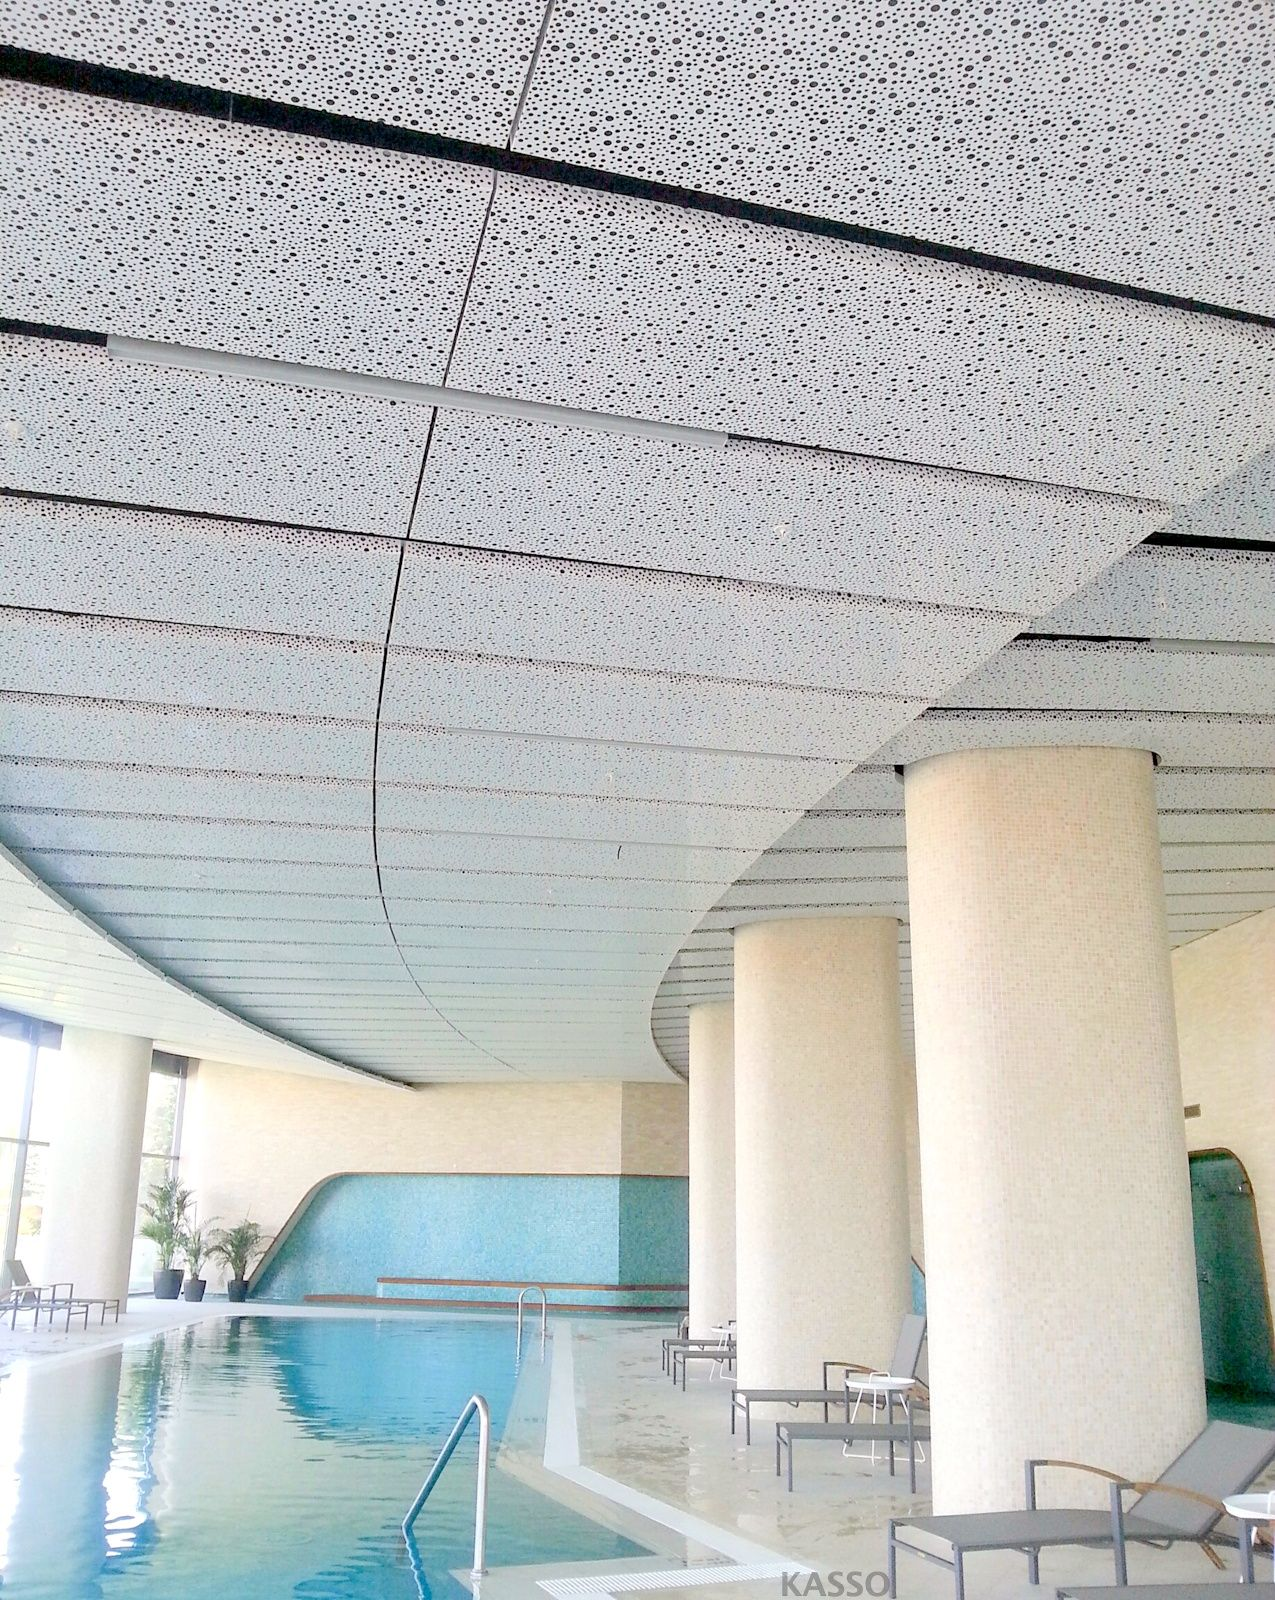 Random Perforated Metal Ceiling // Rixos Bademlik/ Eskiehir -TURKEY //  KASSO Engineering